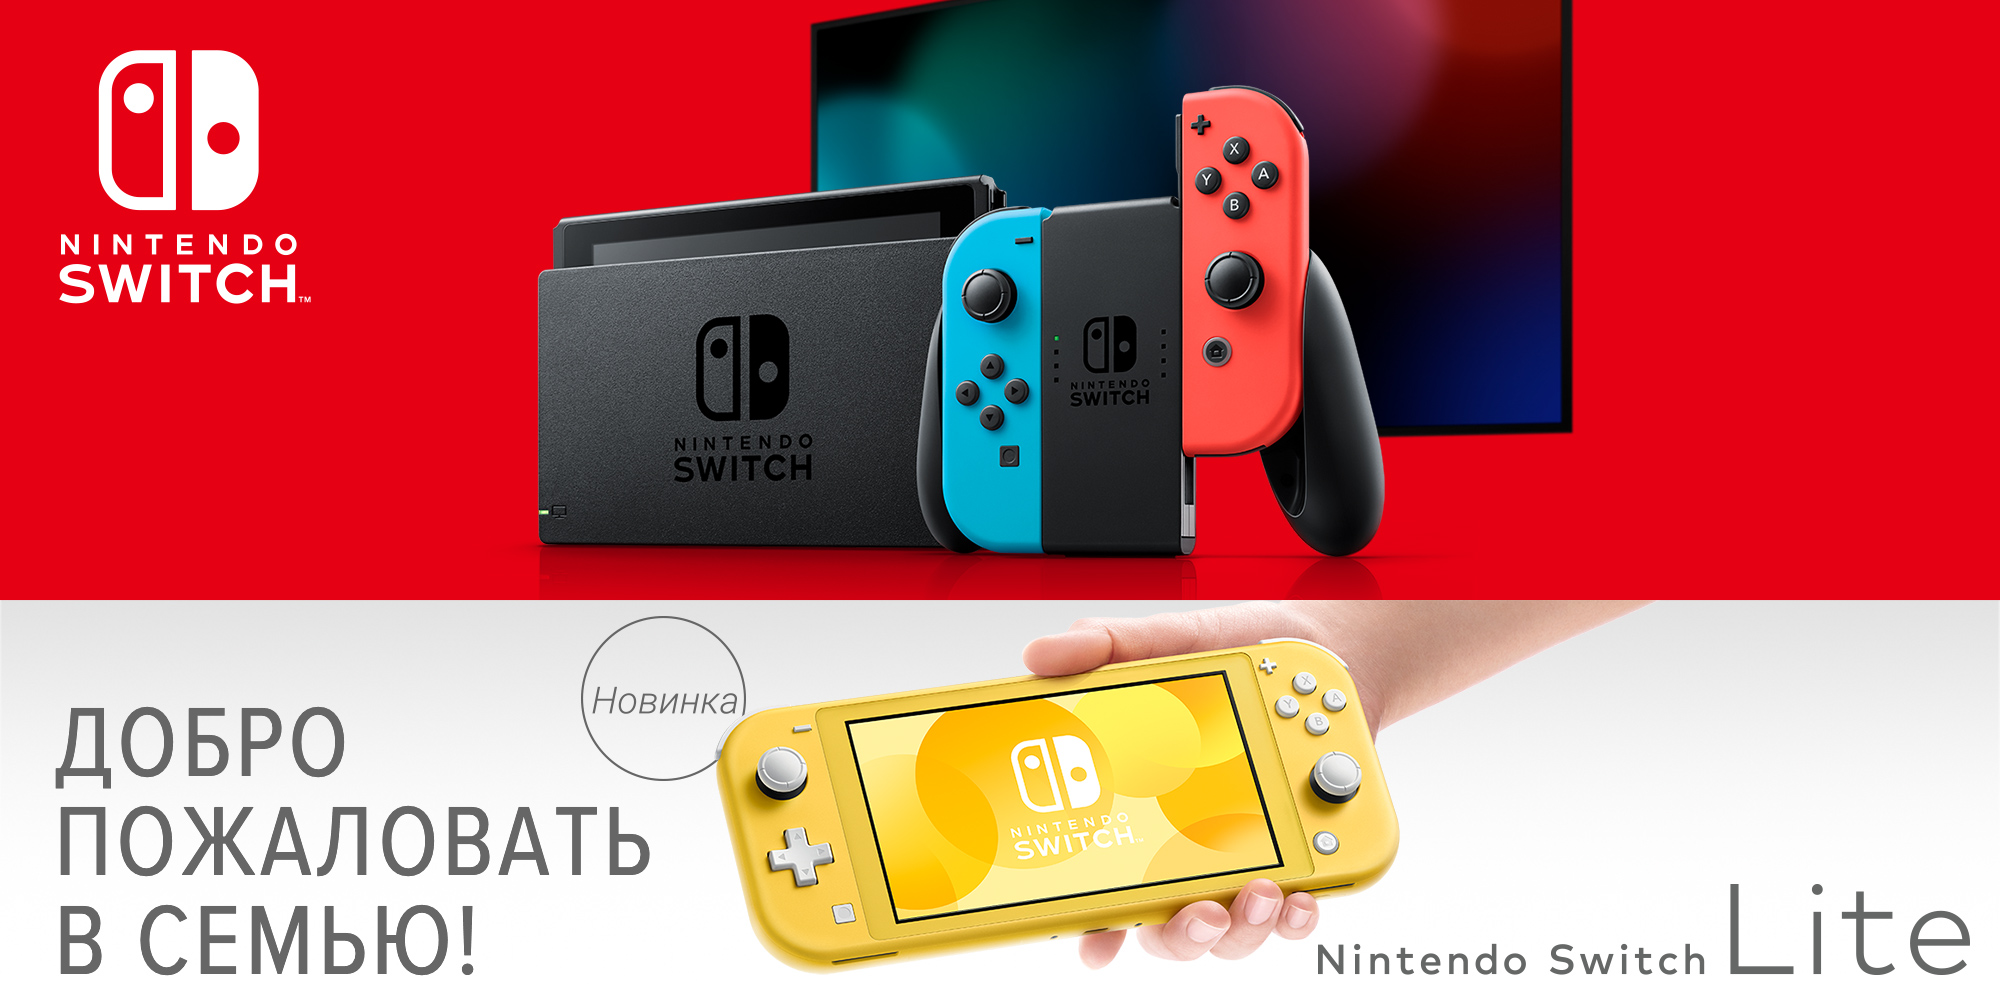 Встречайте Nintendo Switch Lite!